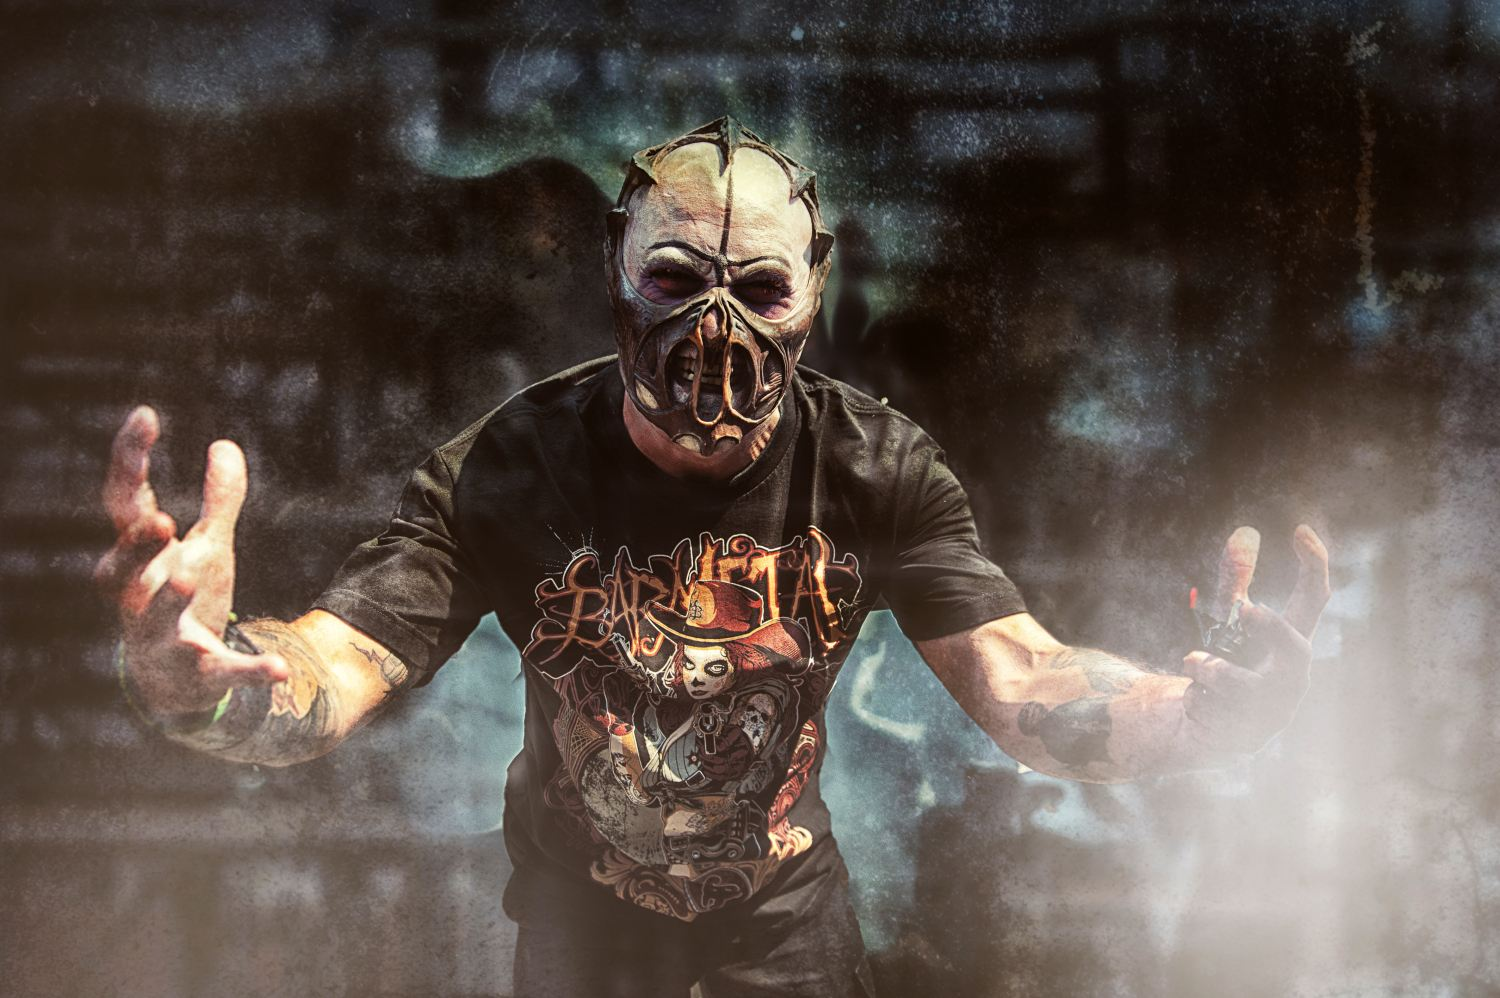 waylonreavis mushroomhead barmetal clothing